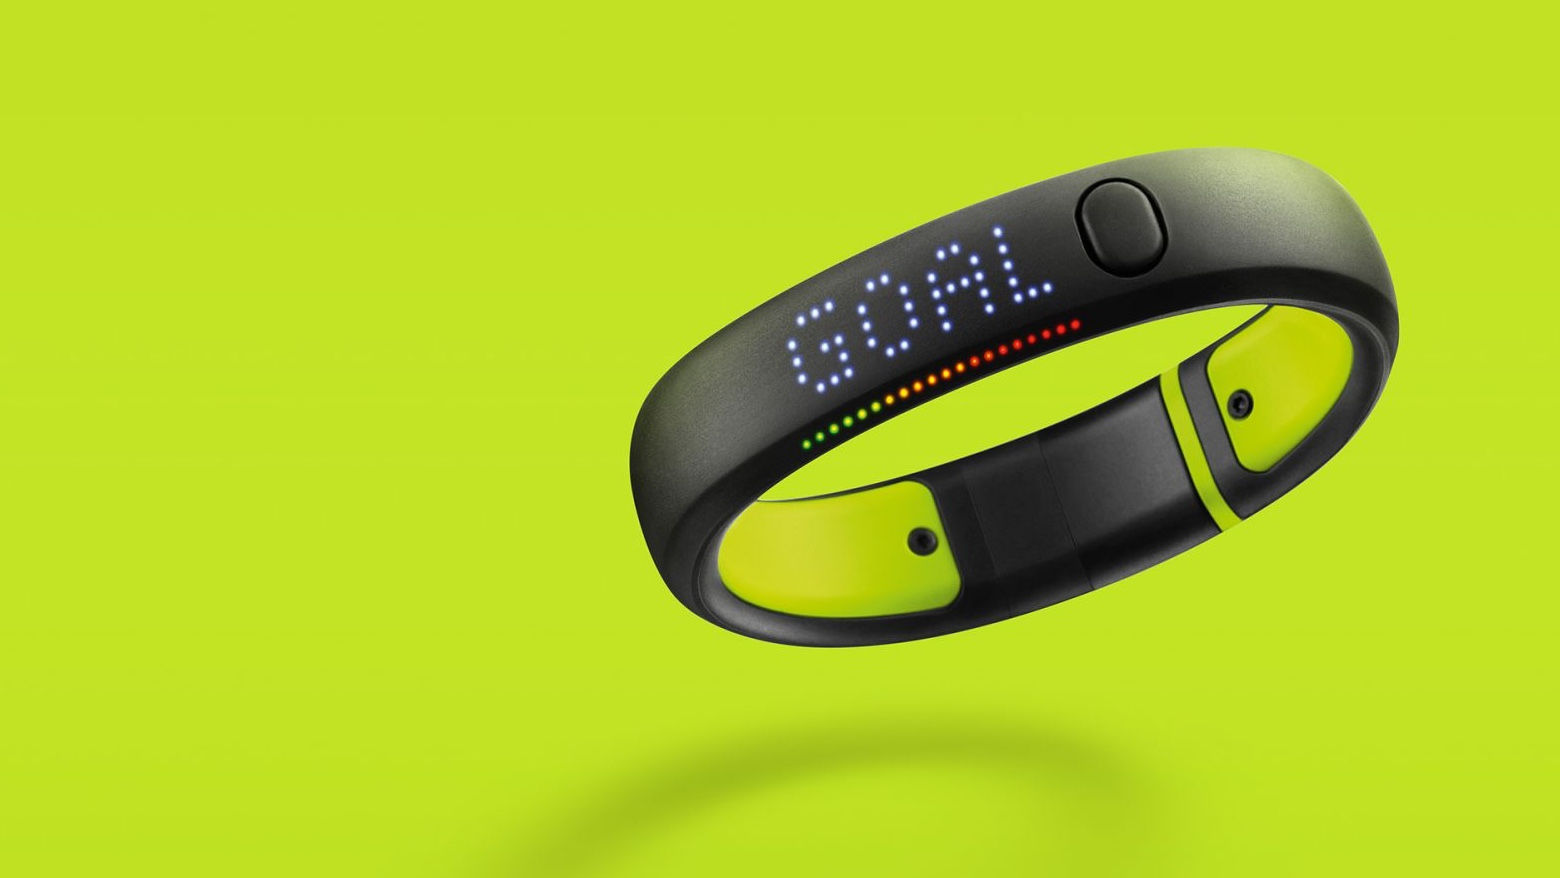 The Latest Nike FuelBand is Still Kind of a Glorified Pedometer recommend